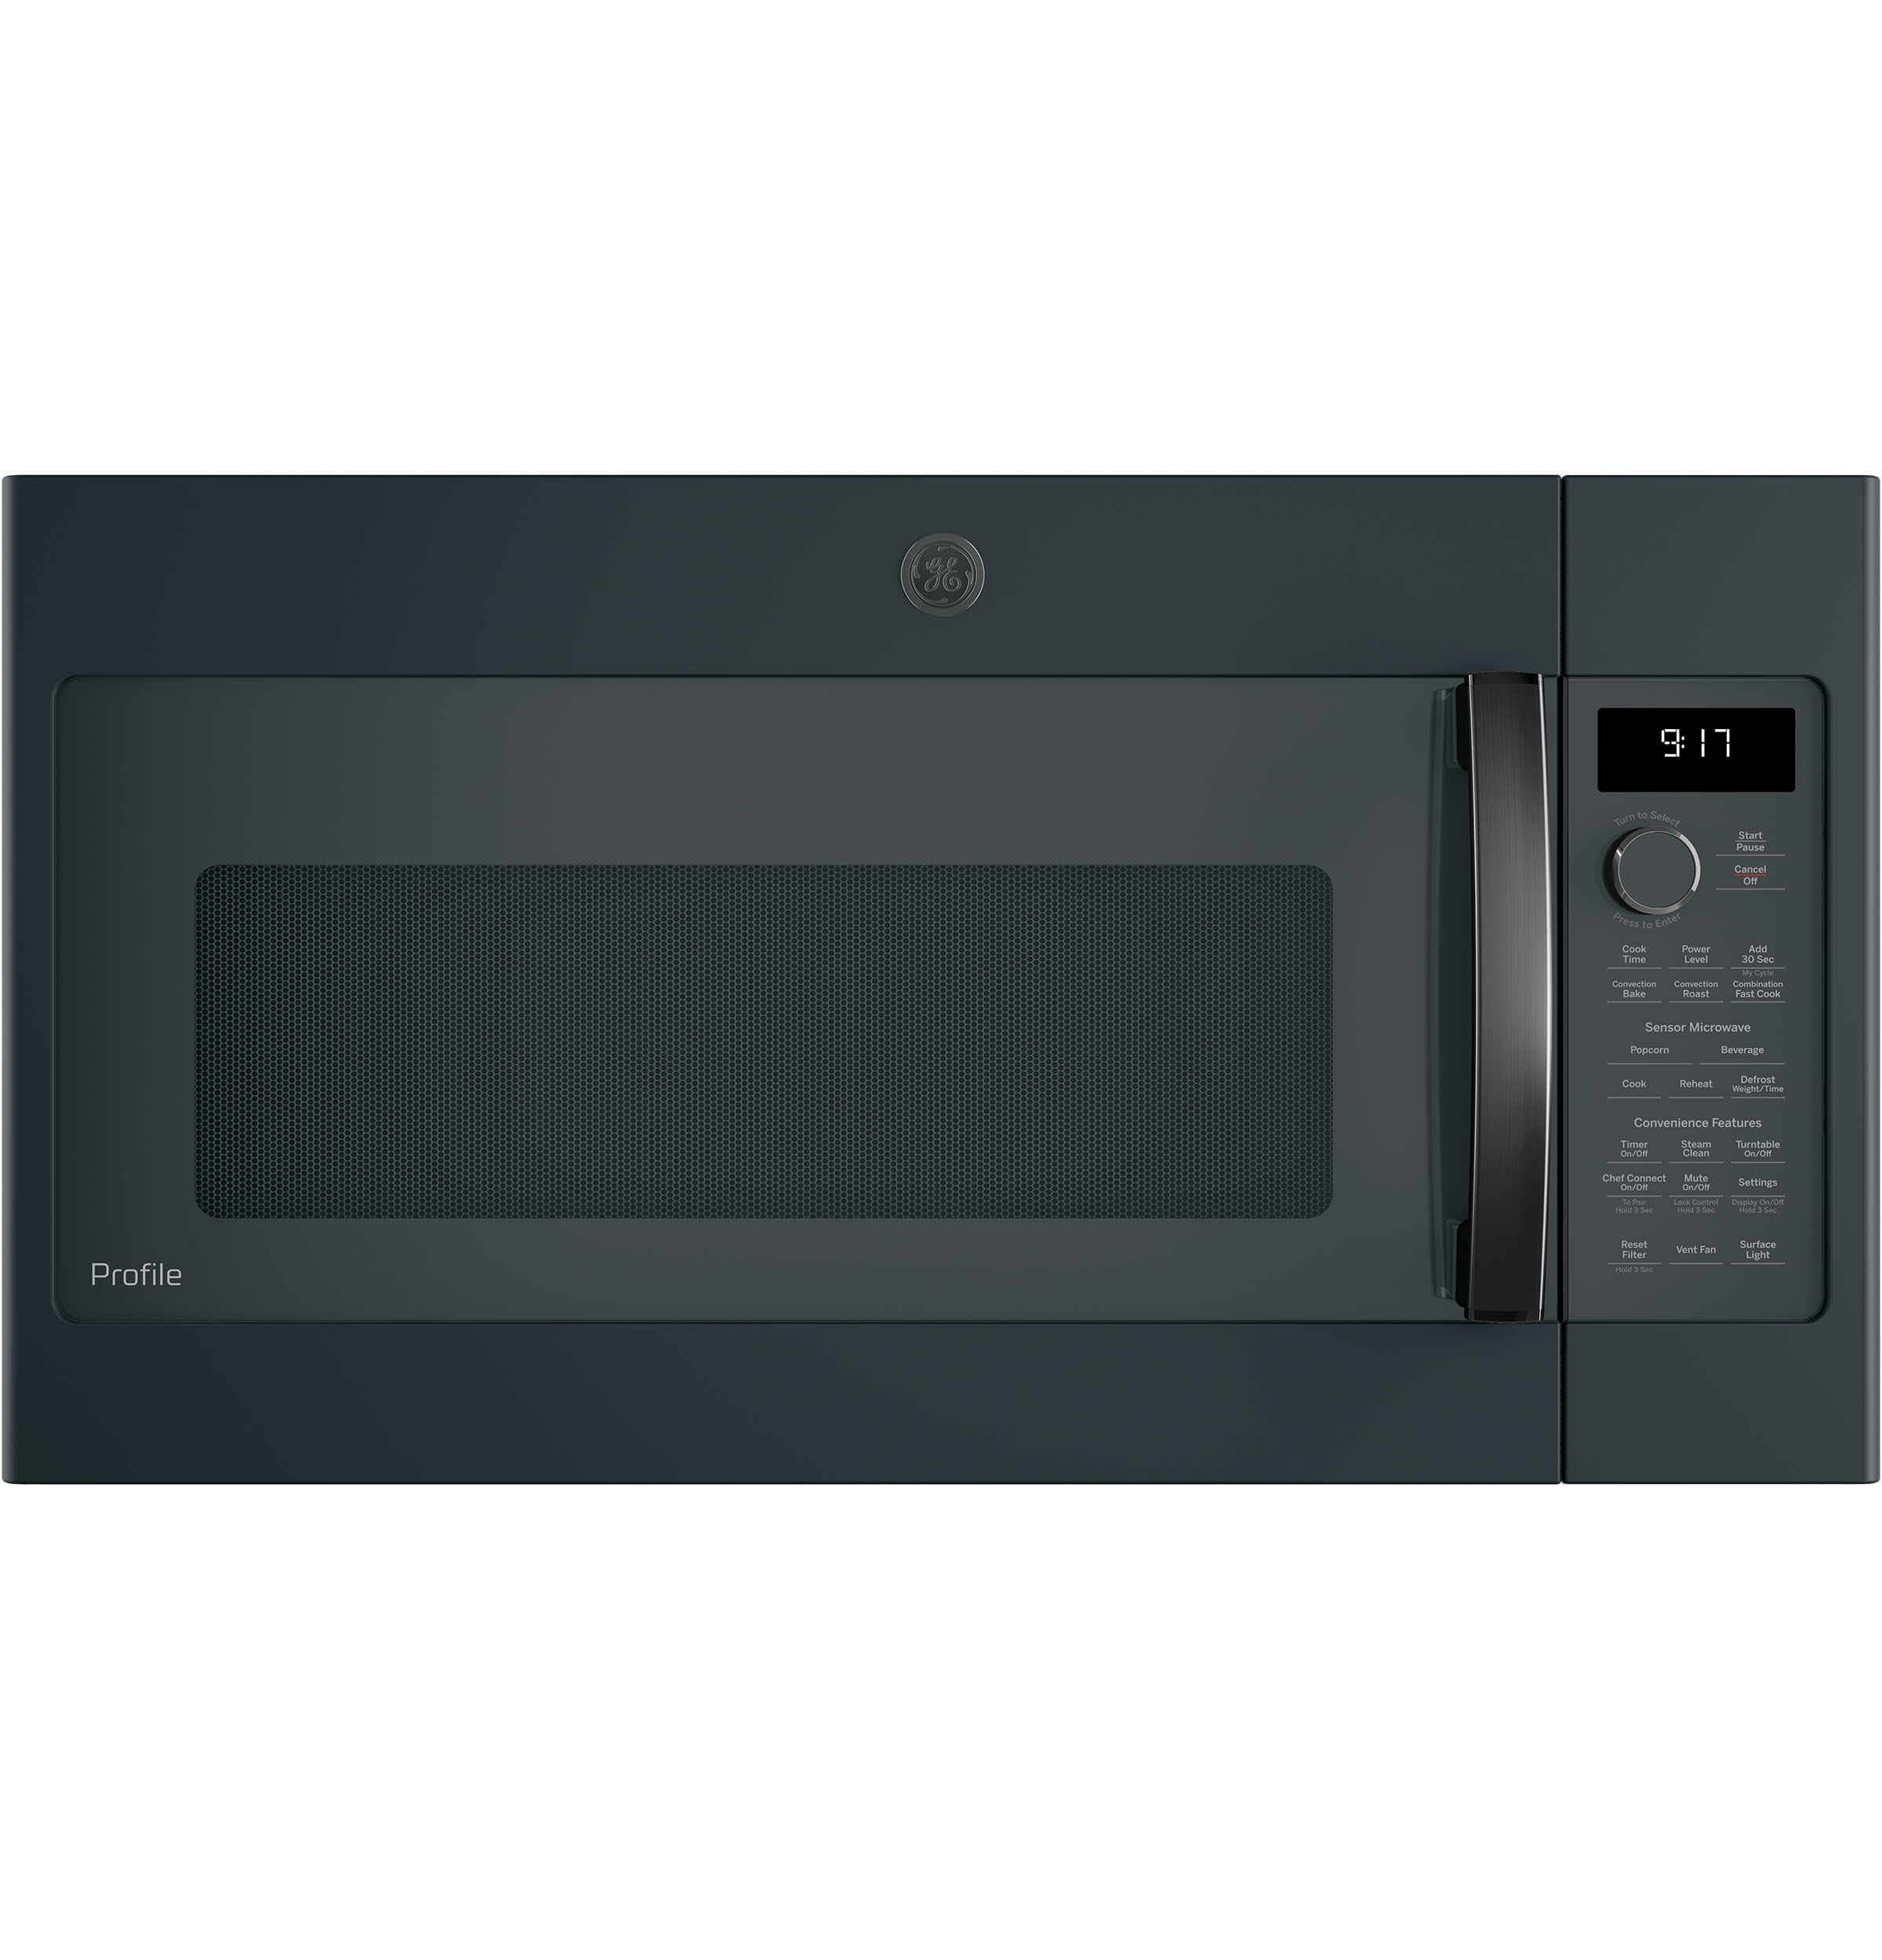 Model: PVM9179FLDS | GE Profile™ Series 1.7 Cu. Ft. Convection Over-the-Range Microwave Oven